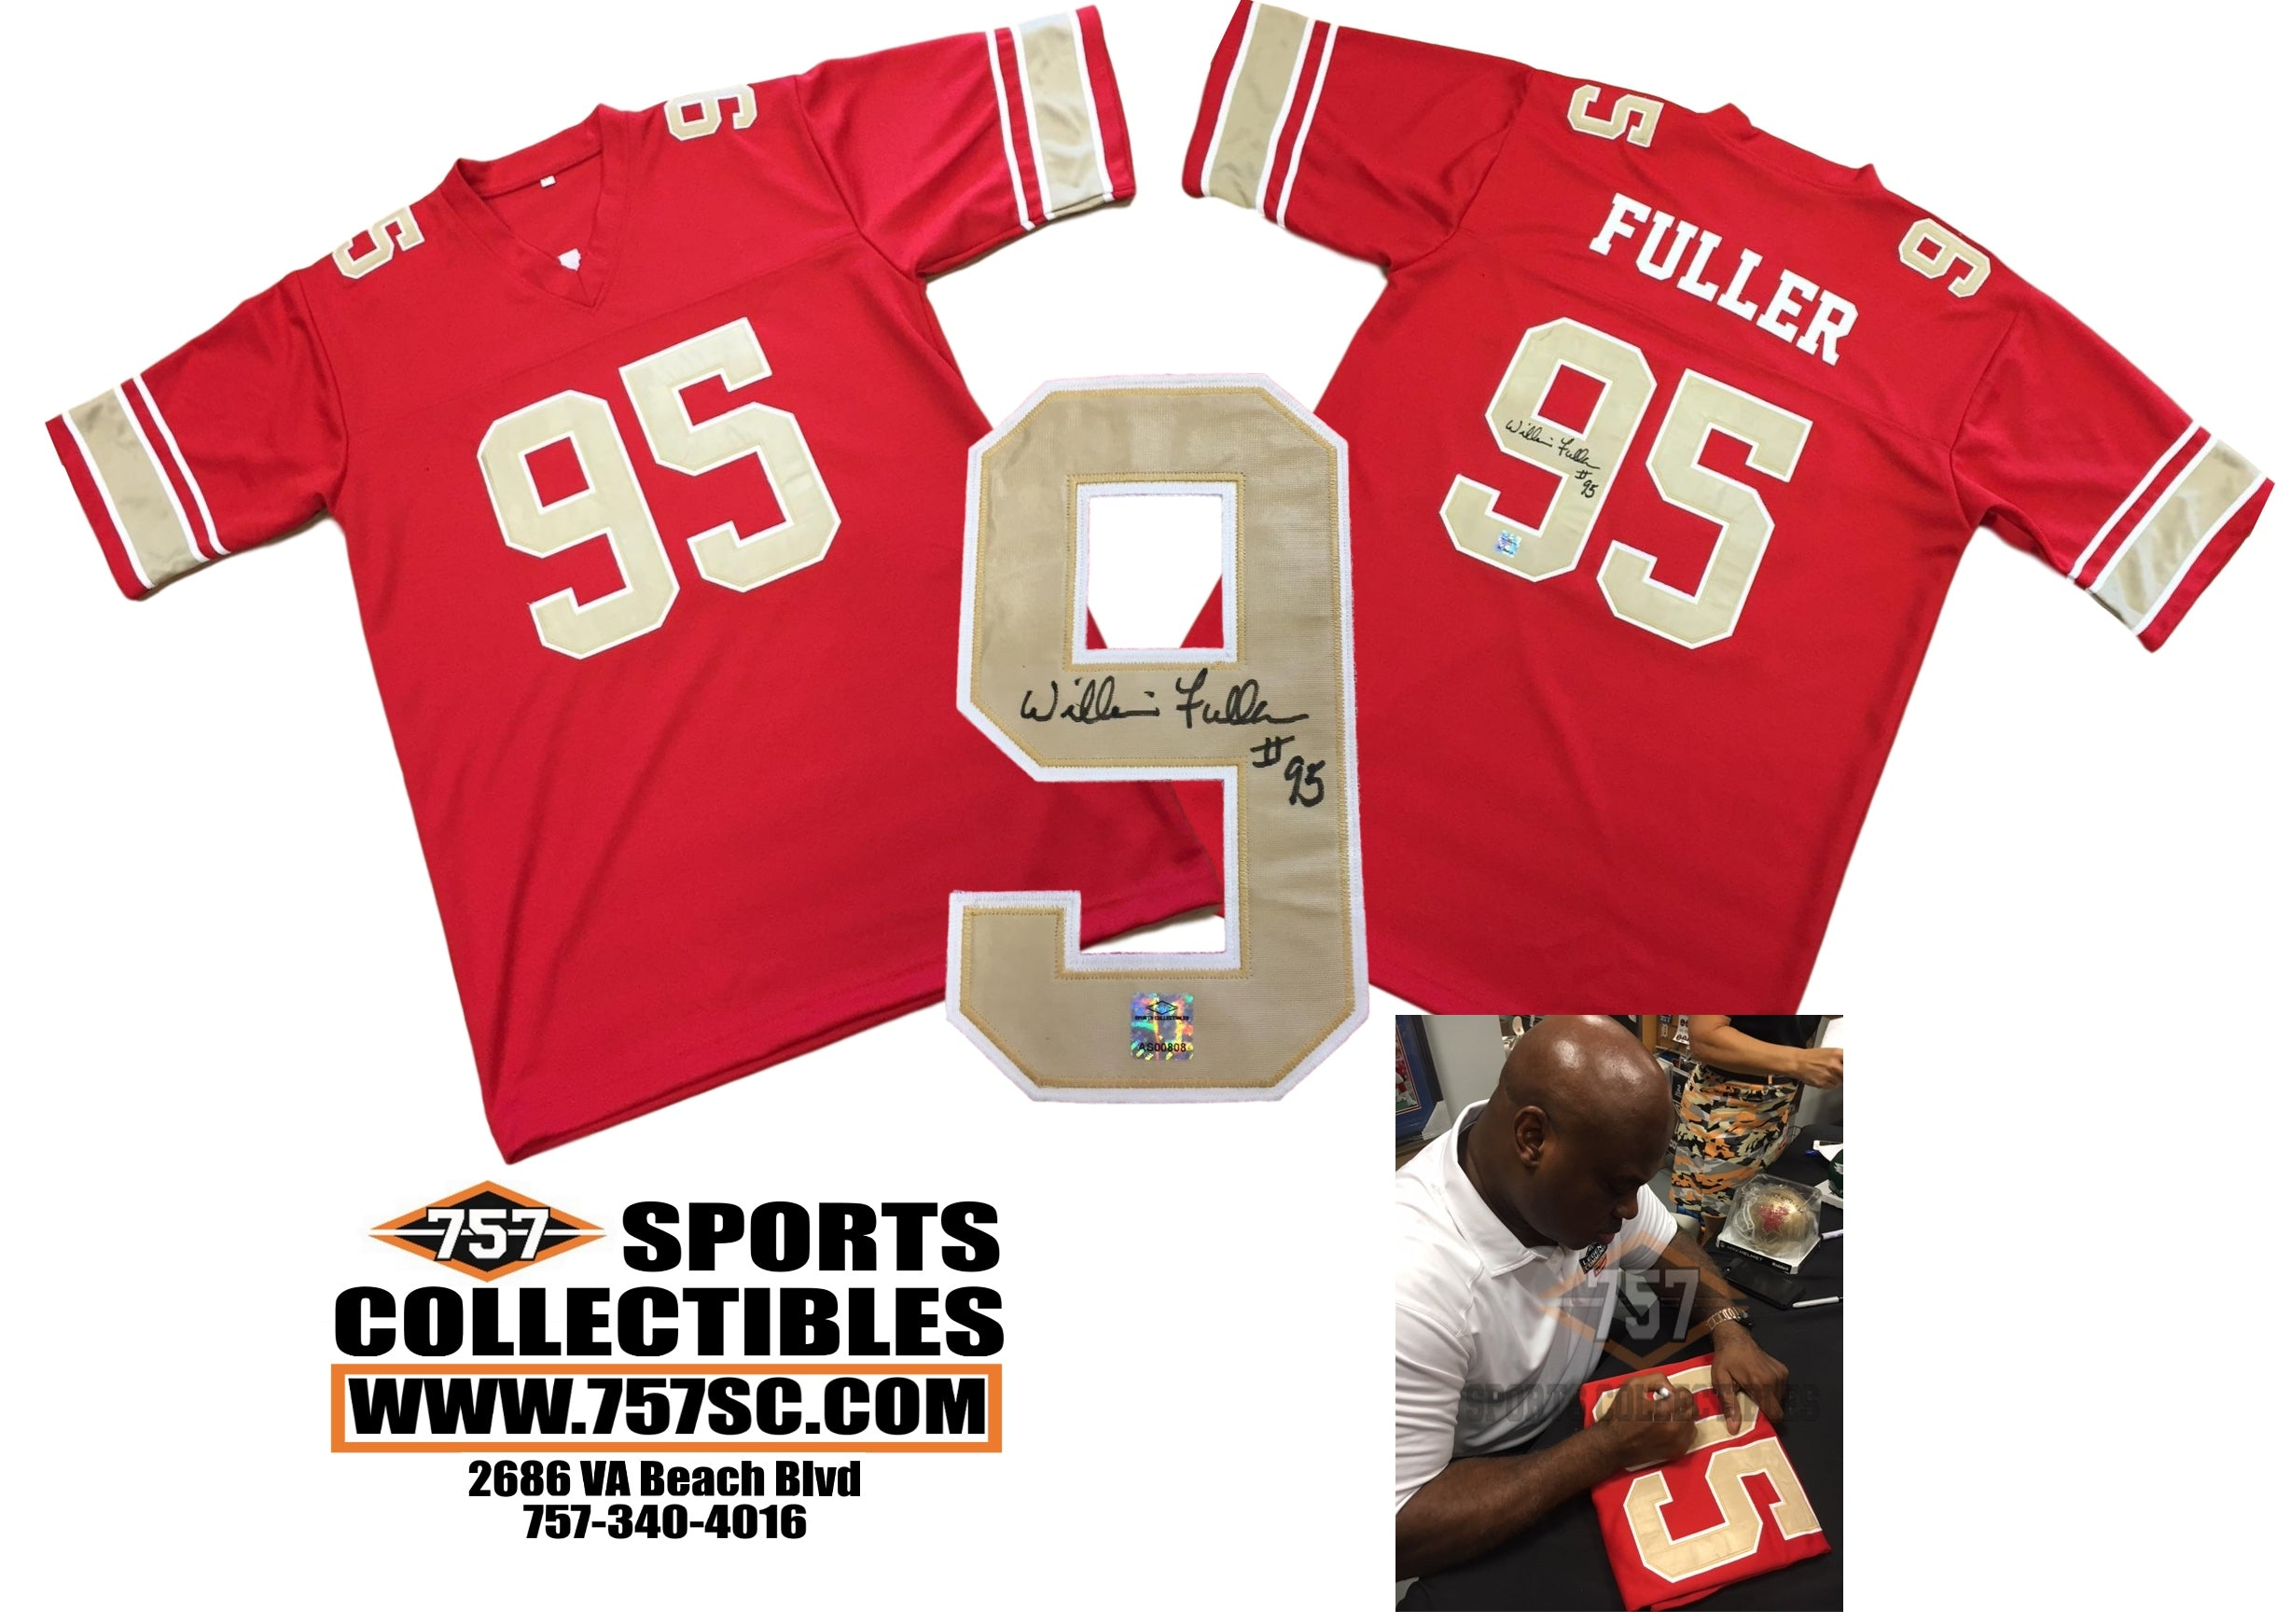 0bad357a0f2 Philadelphia Baltimore Stars William Fuller Signed Autographed Red Custom  Jersey (JSA PSA Pass) 757